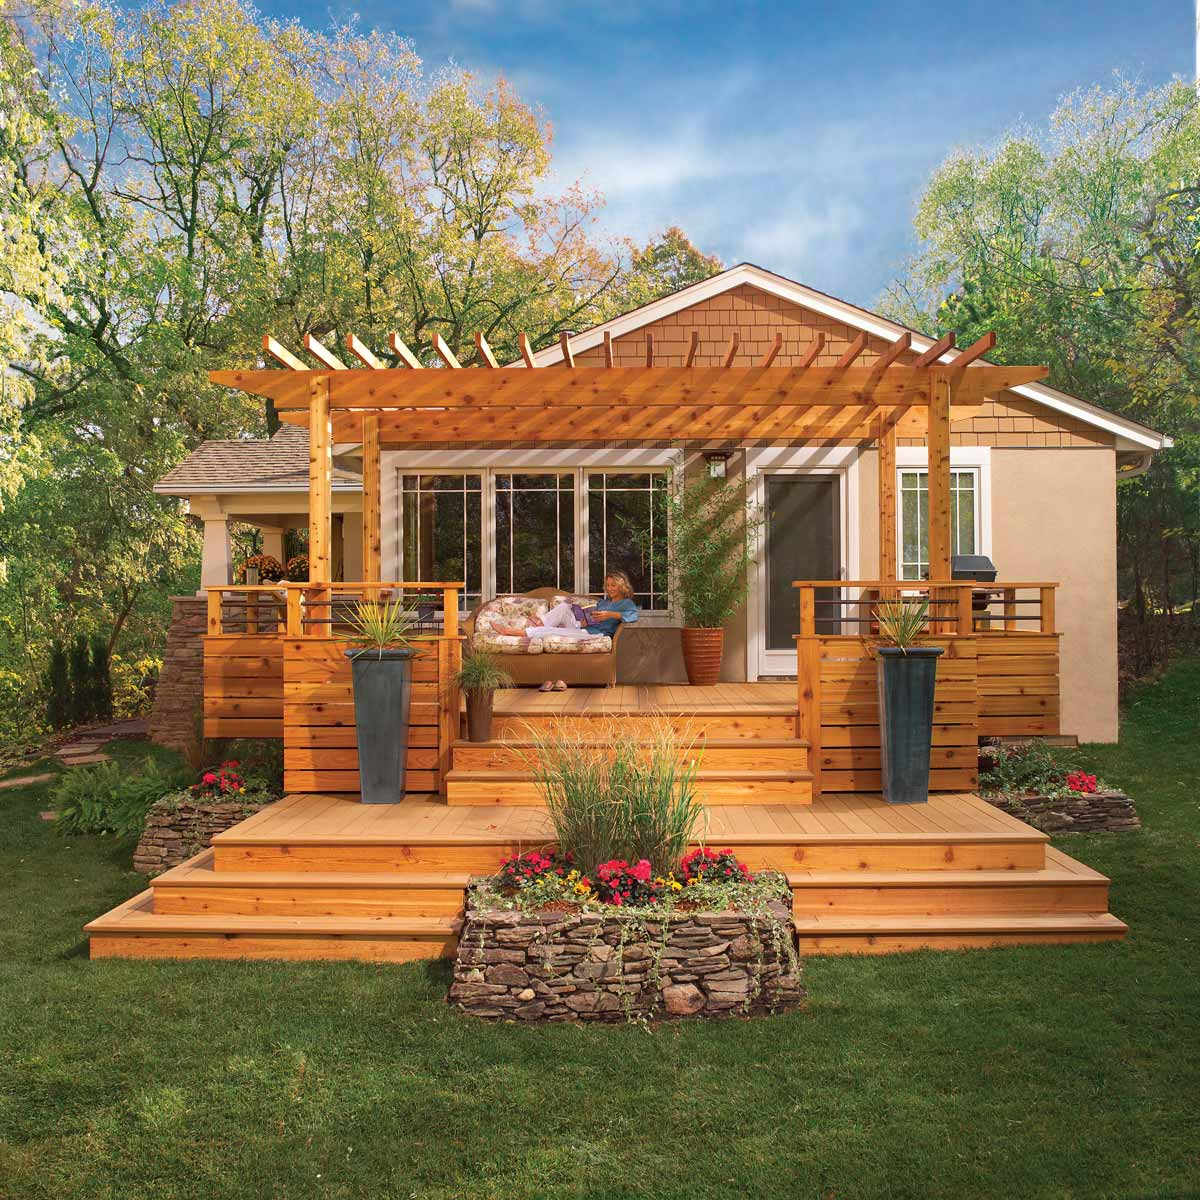 34 Awesome Outdoor Diy Projects To Get You Outside The Family Handyman with regard to 12 Smart Designs of How to Make Diy Backyard Deck Ideas